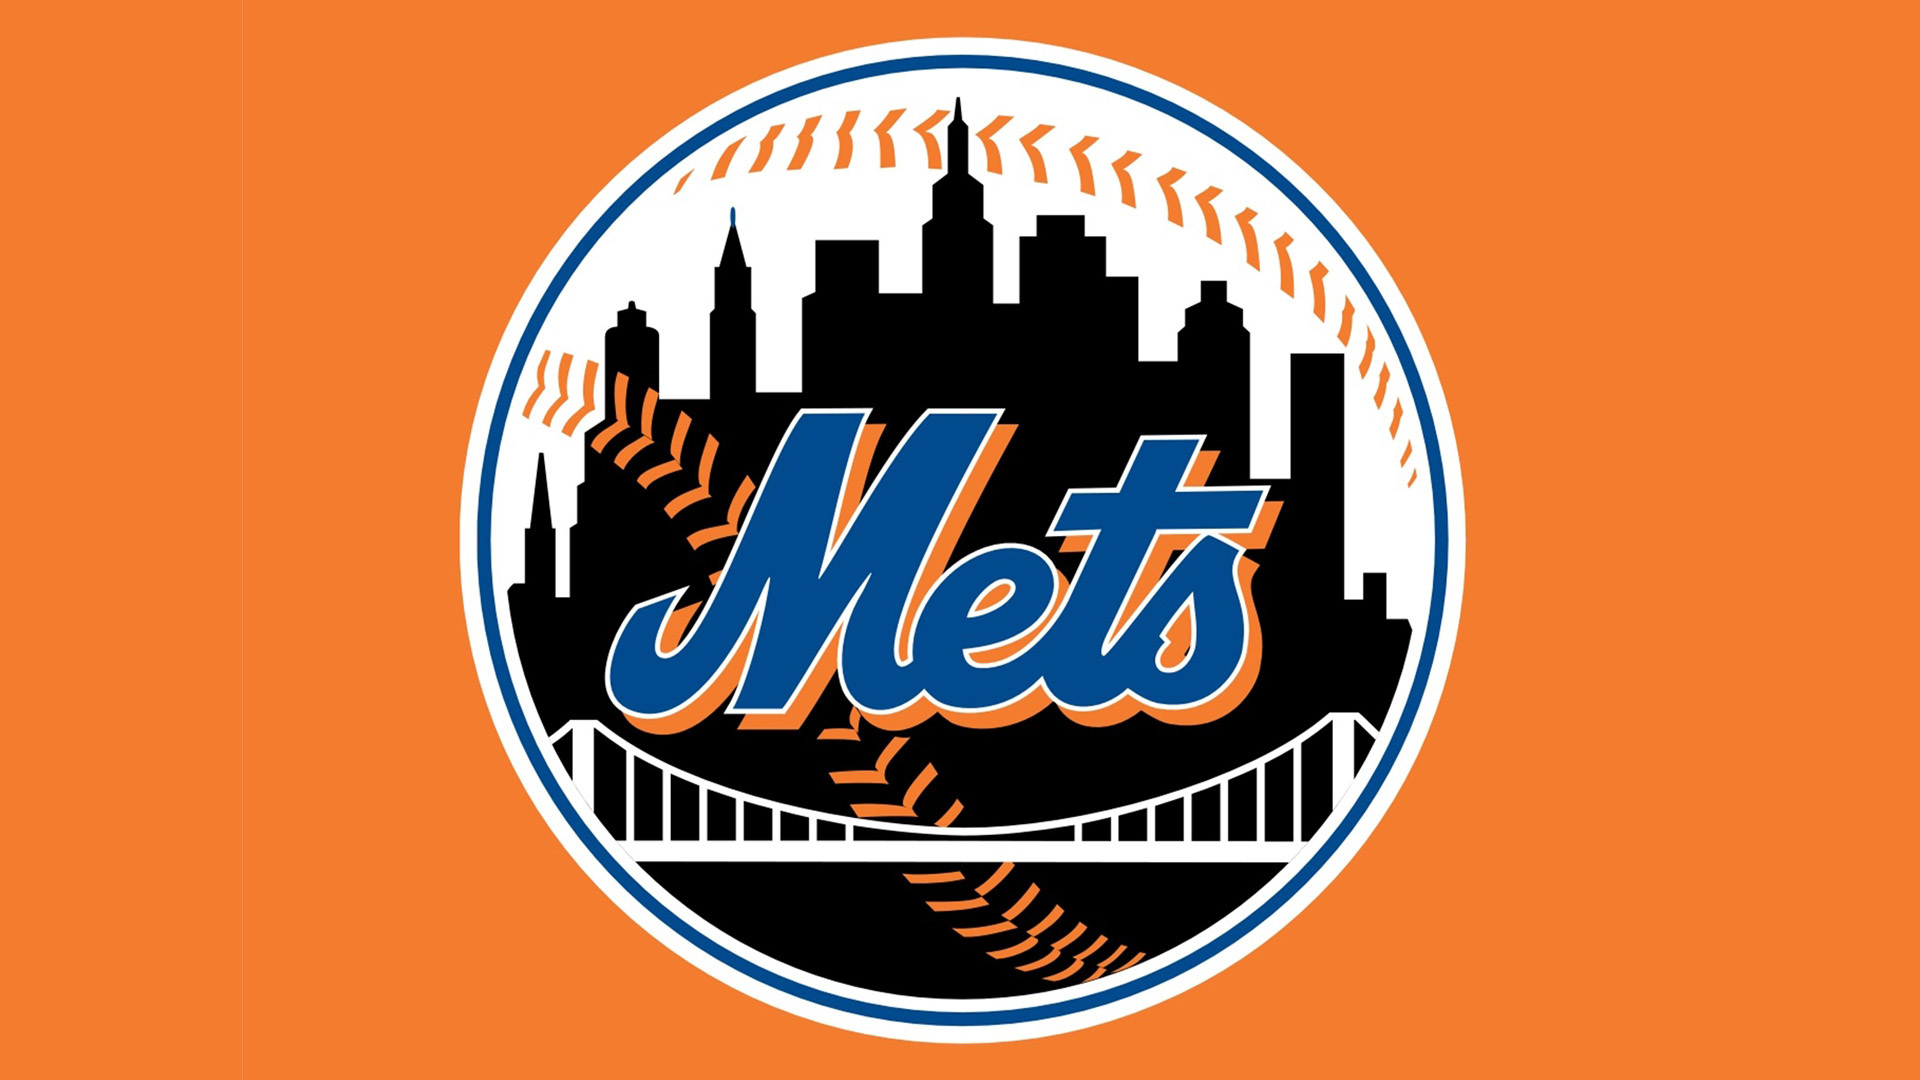 New York Mets Wallpaper: New York Mets Wallpapers Images Photos Pictures Backgrounds